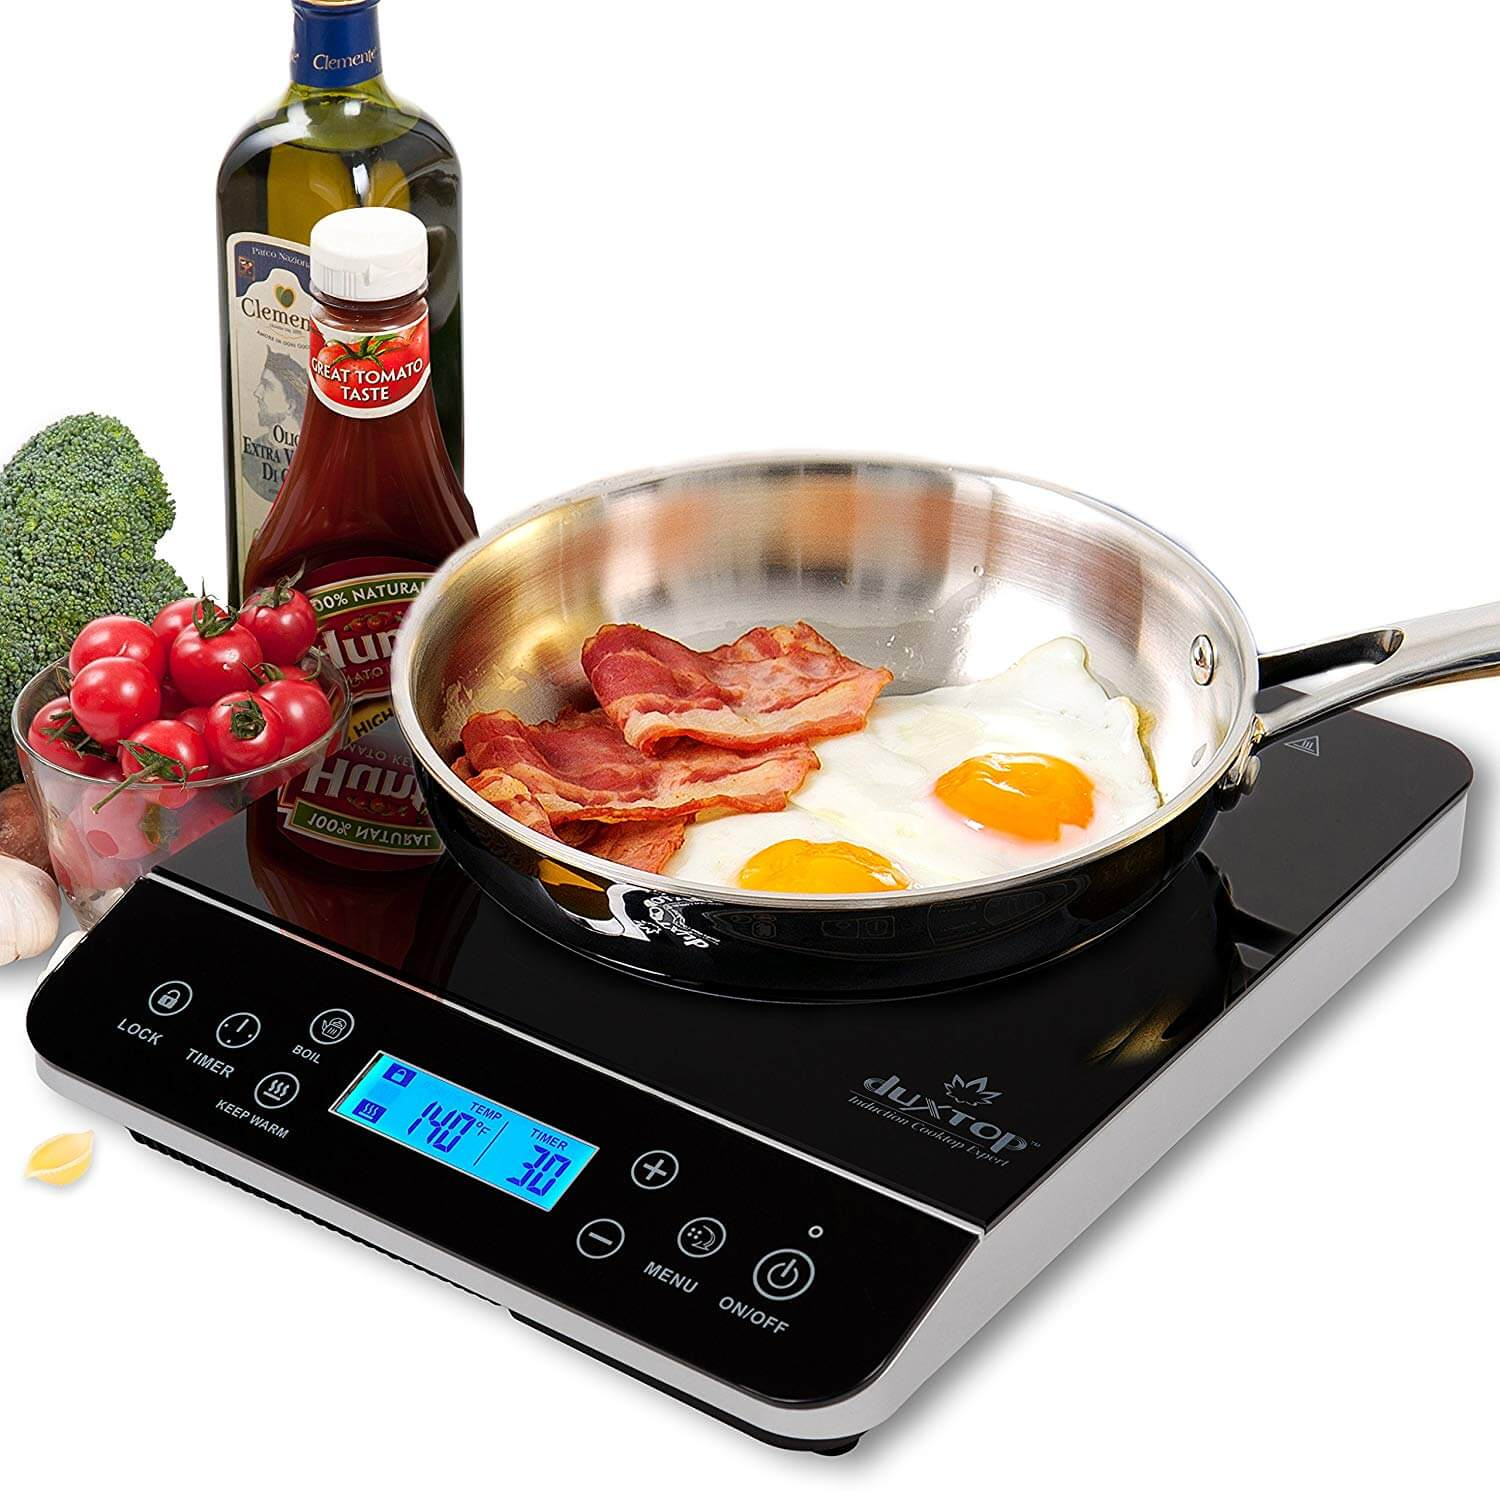 Duxtop LCD Portable Induction Cooktop Countertop Burner 9600LS